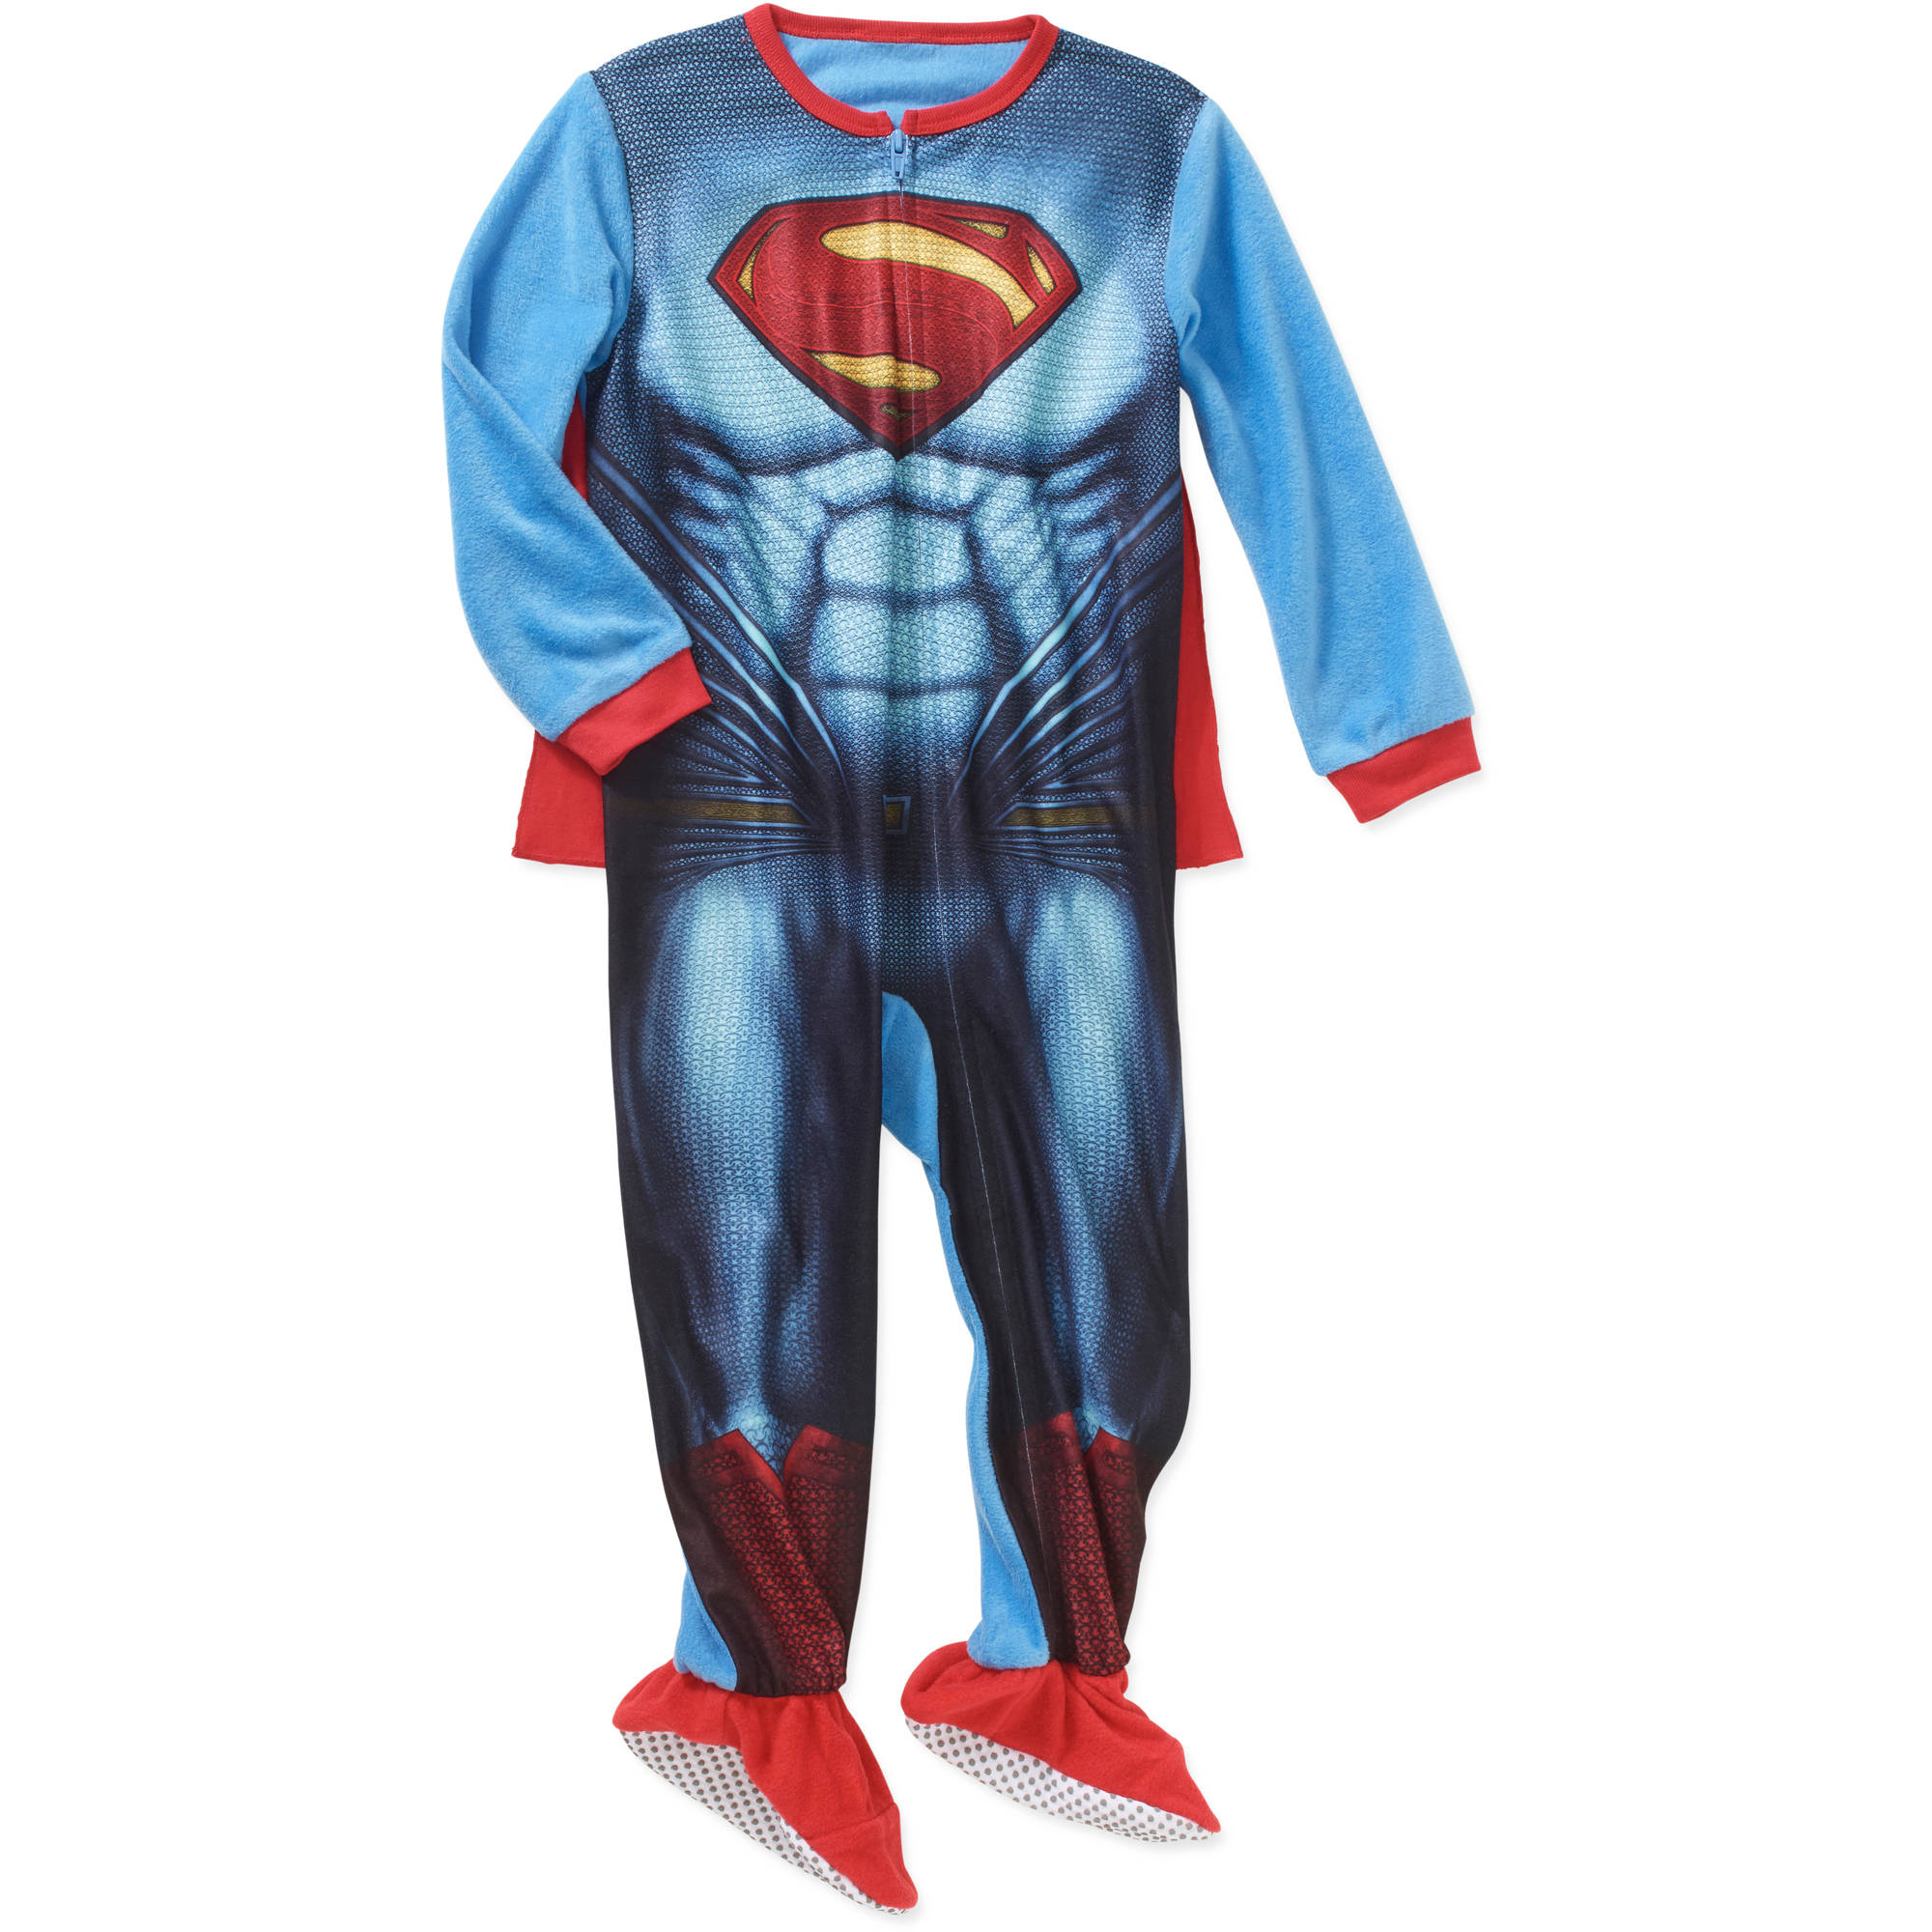 Superman Toddler Boys' Blanket Sleeper with Cape